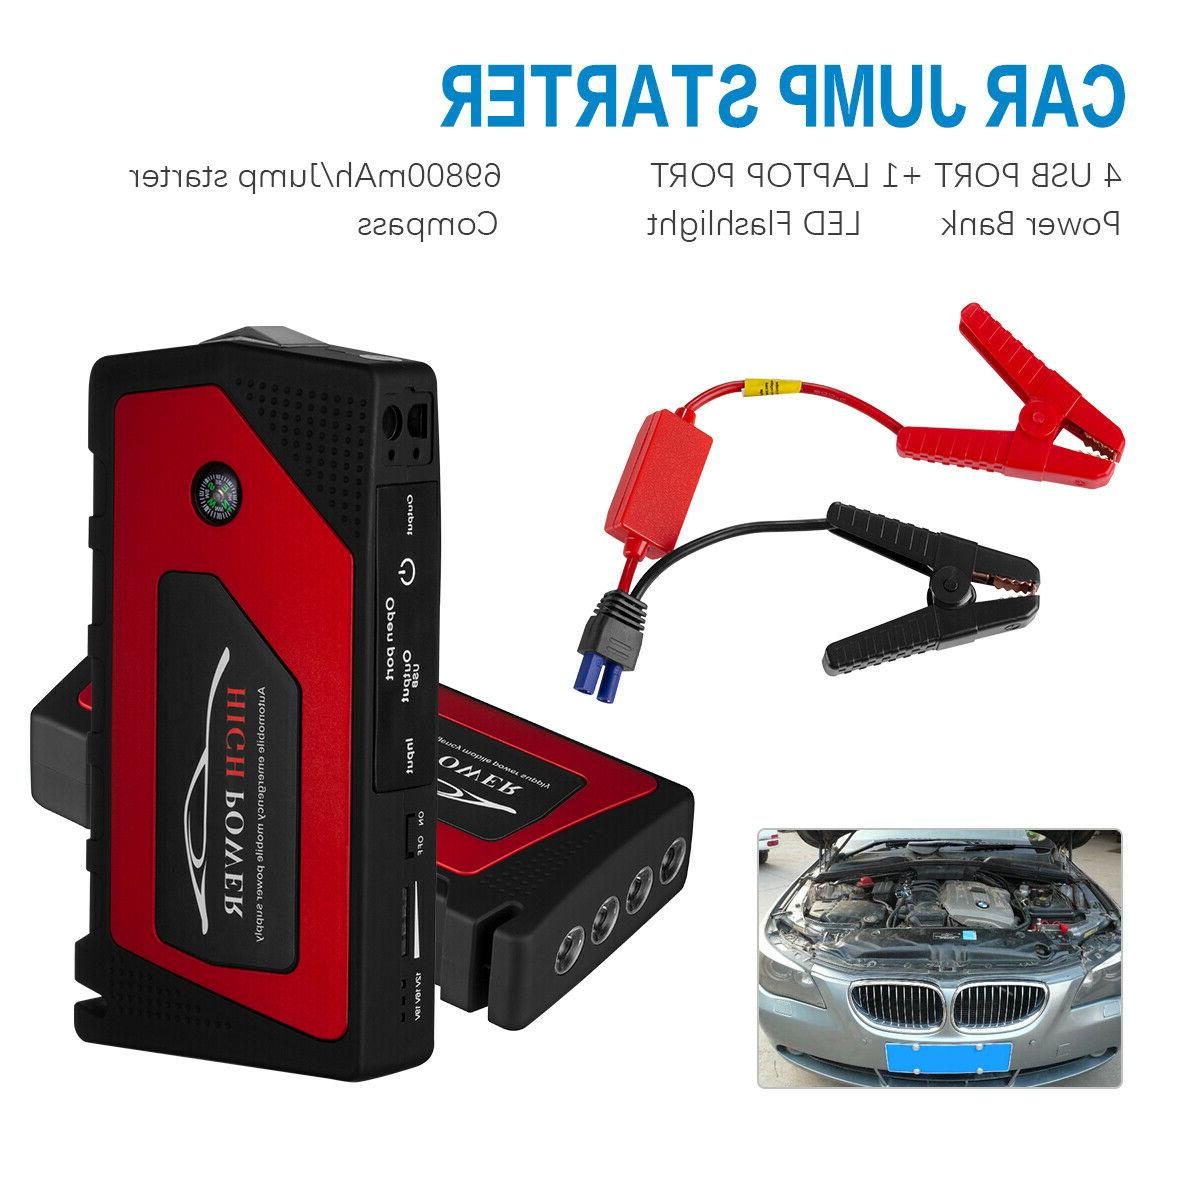 12V Portable USB Battery Clamp 600A 69800mah